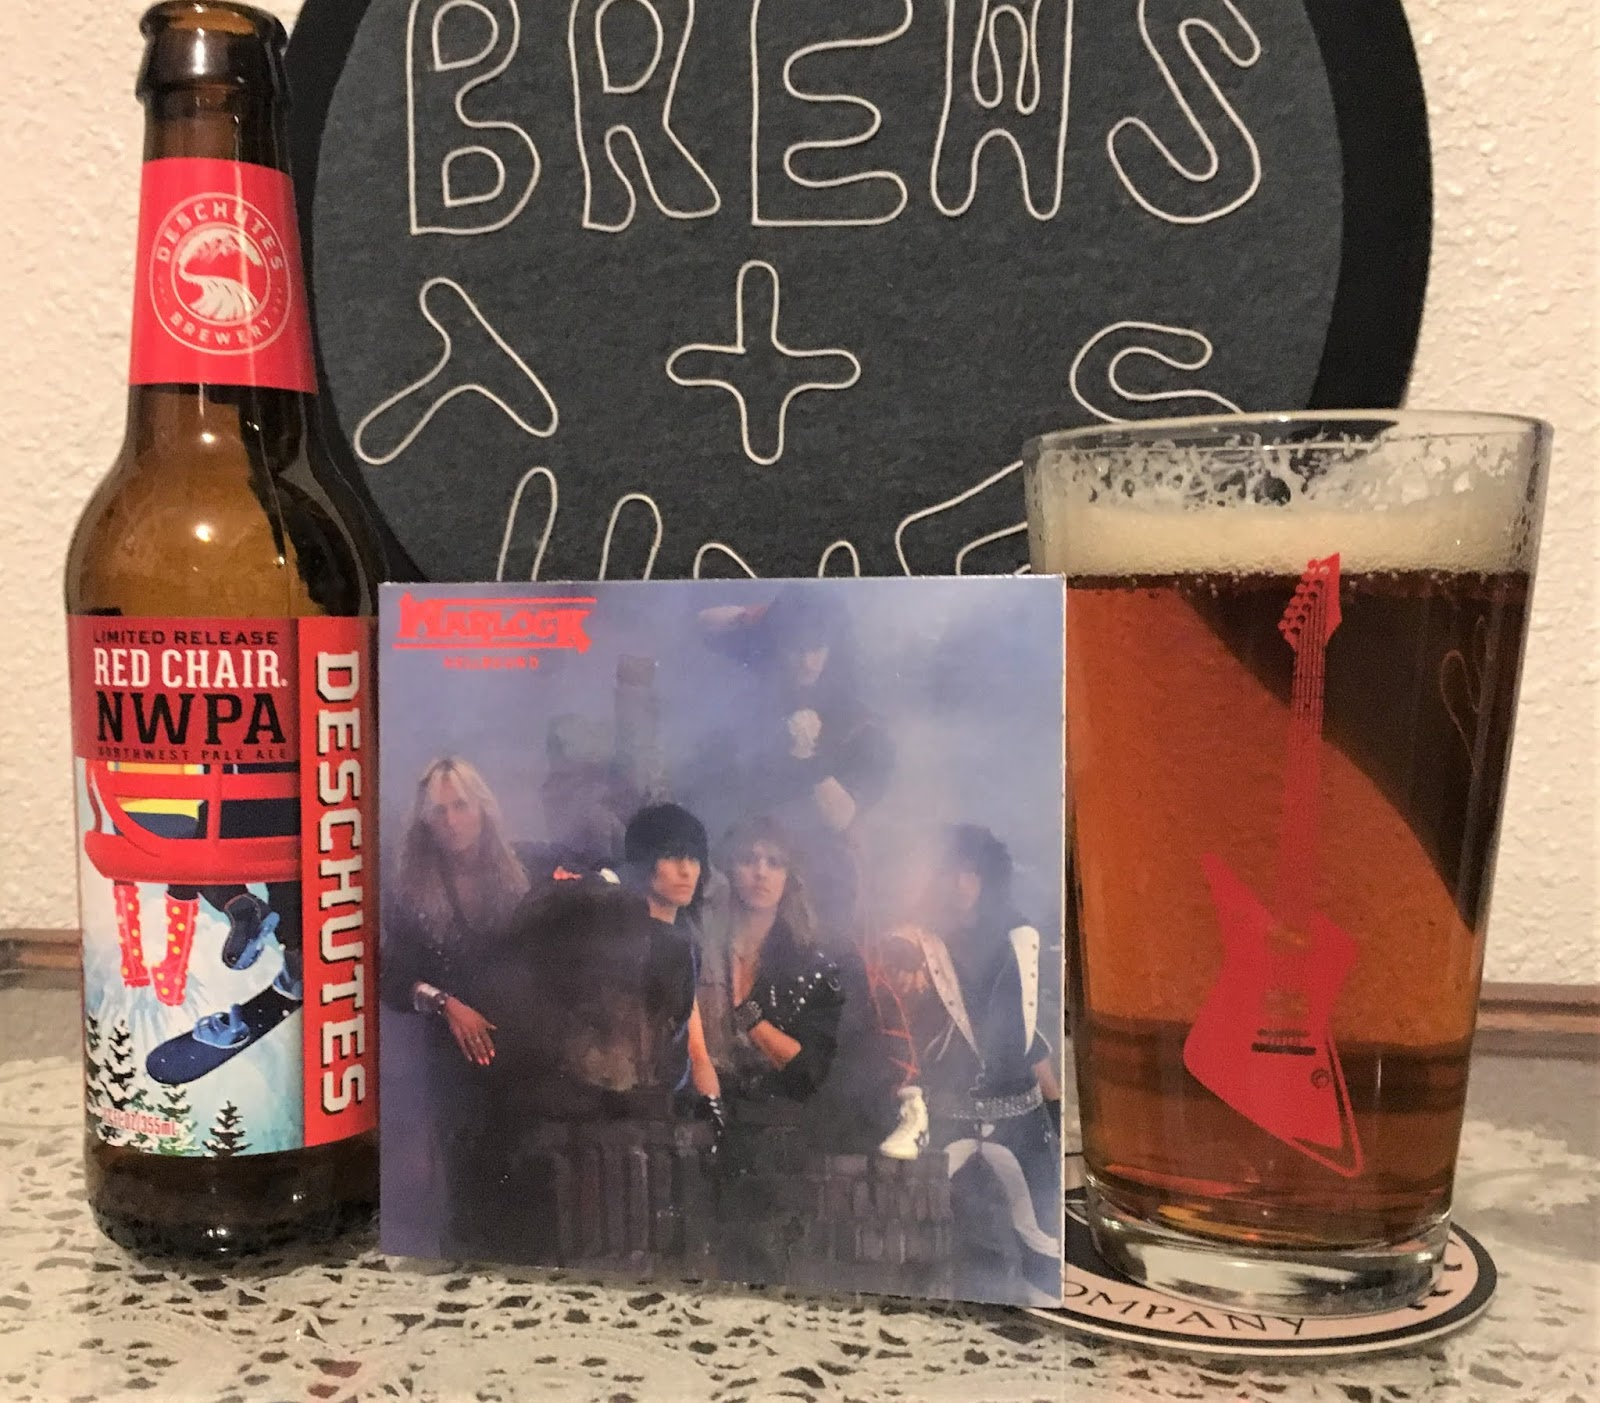 red chair nwpa abv folding metal chairs brews and tunes beer music pairing december 28th 2018 the meista here today rocking out with a of warlock s sophomore album hellbound from deschutes brewing company